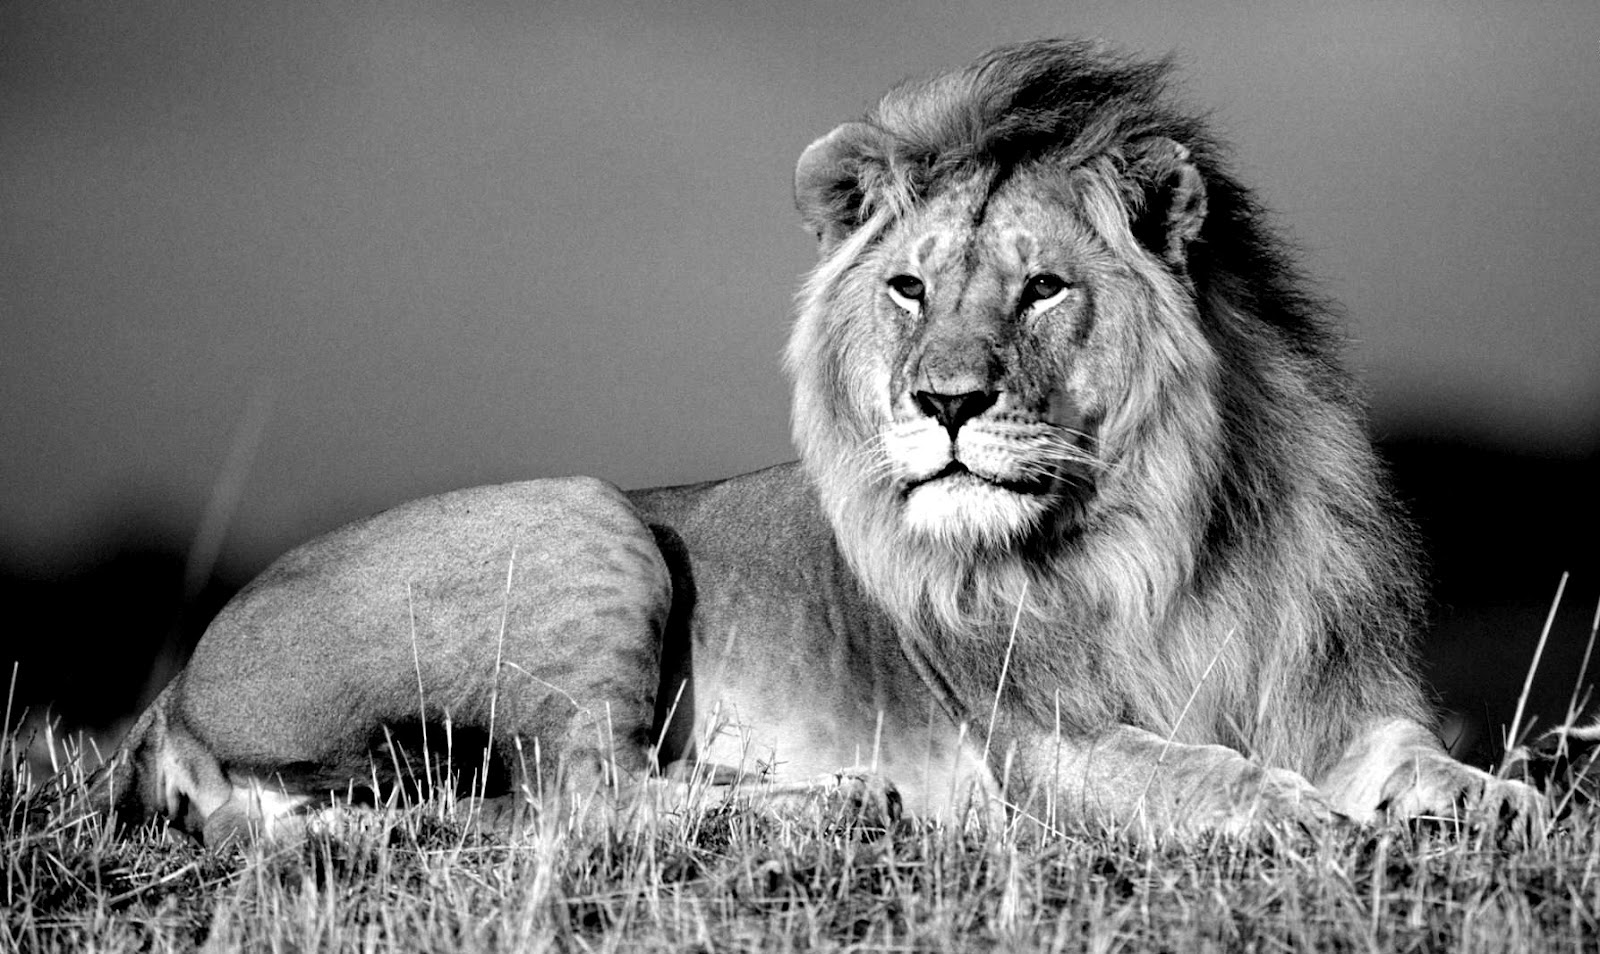 black and white lion wallpaper wallpapersafari. Black Bedroom Furniture Sets. Home Design Ideas